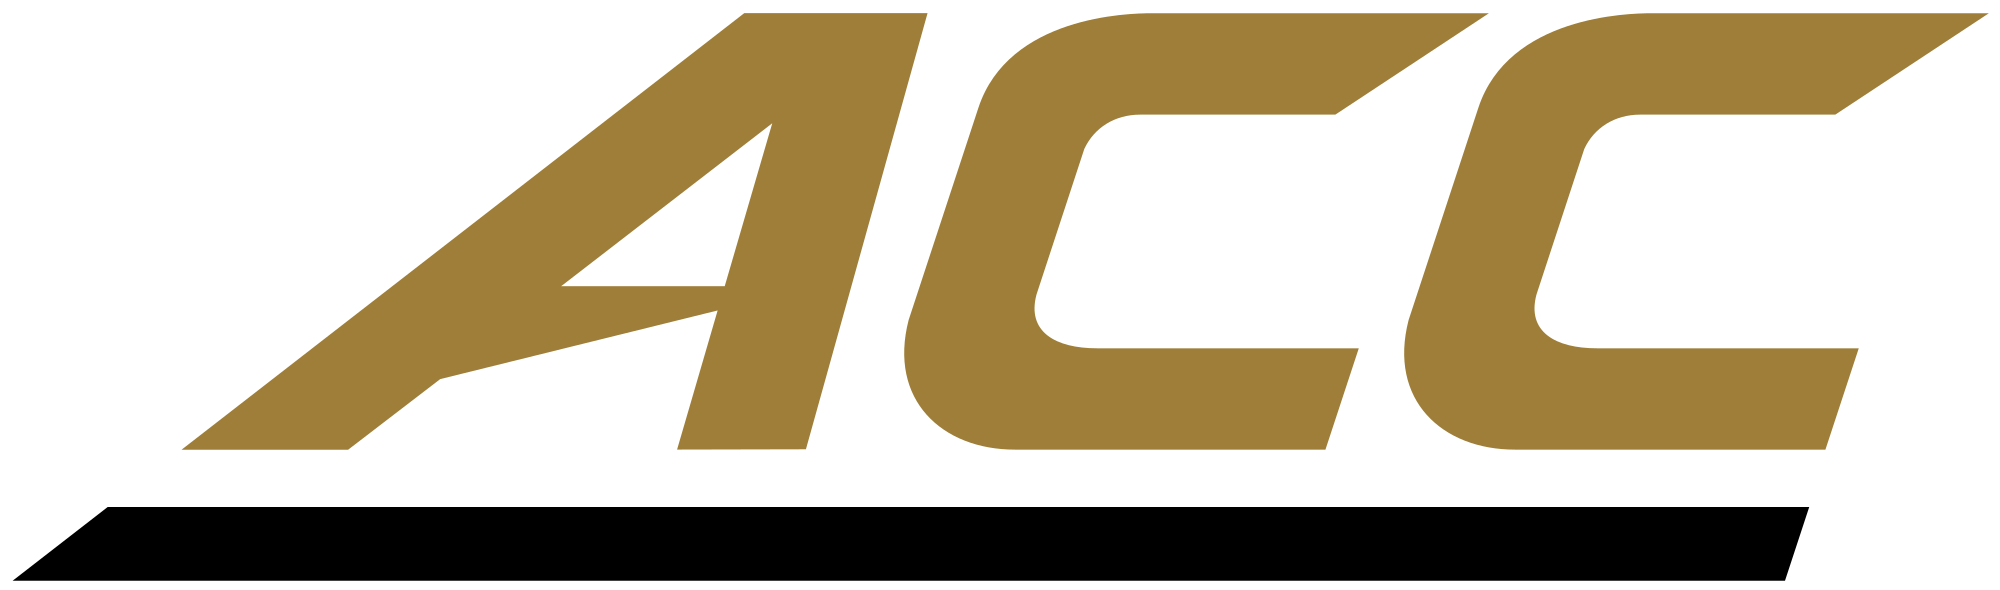 Wake forest logo png. File acc in colors